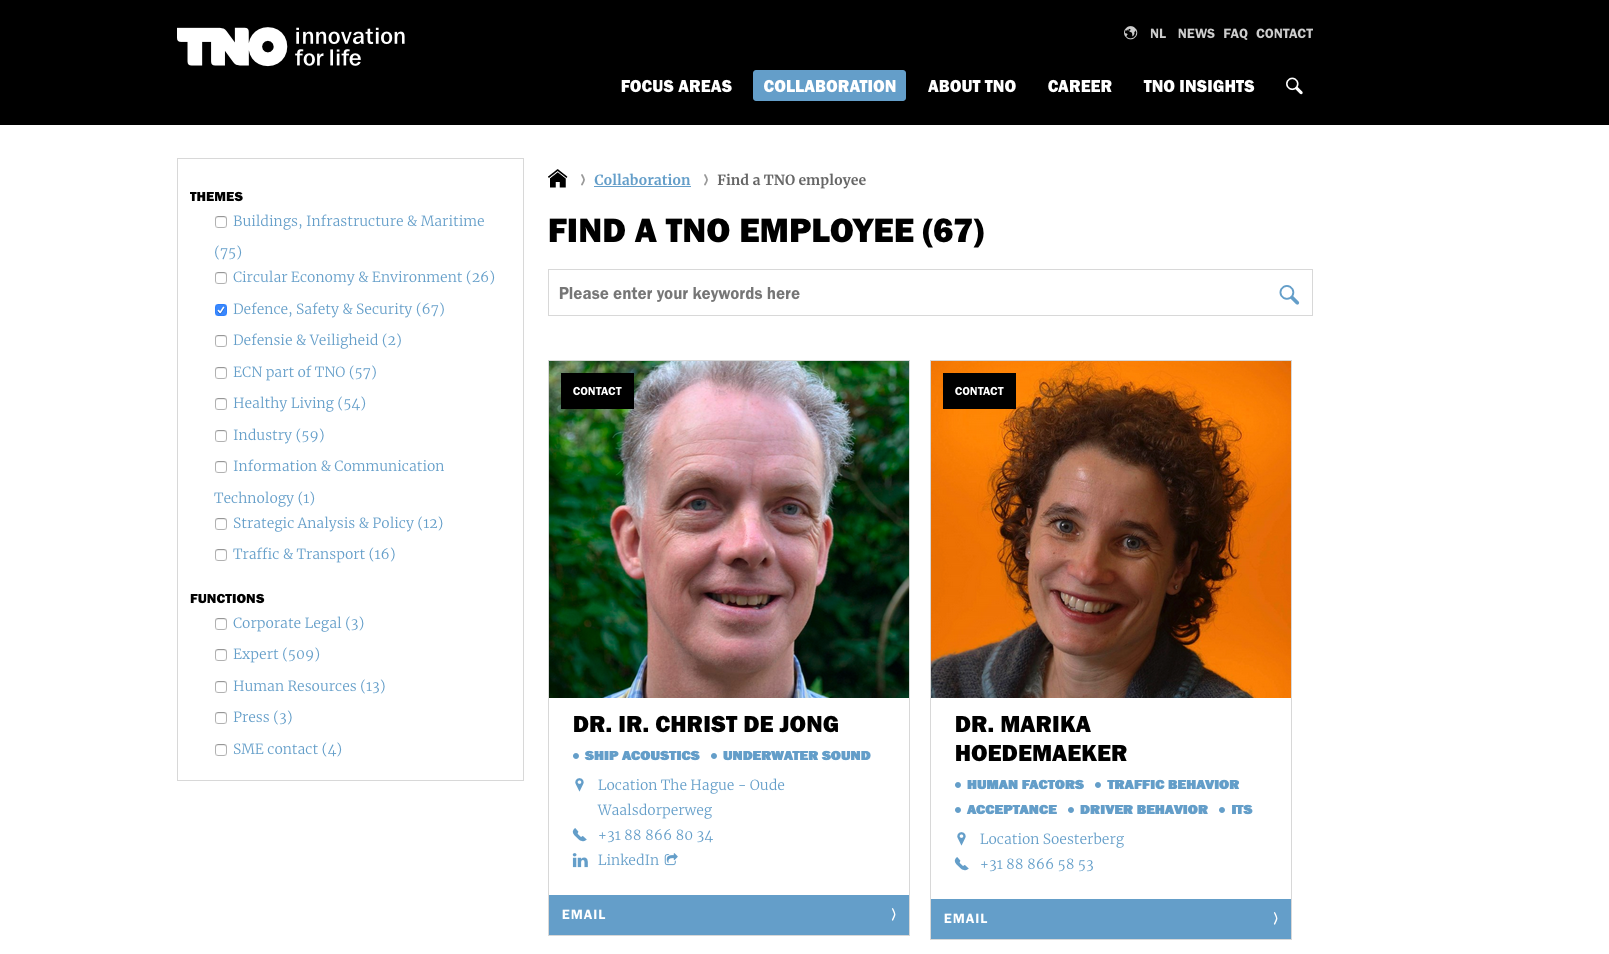 TNO's on-site employee directory houses a wealth of contact information